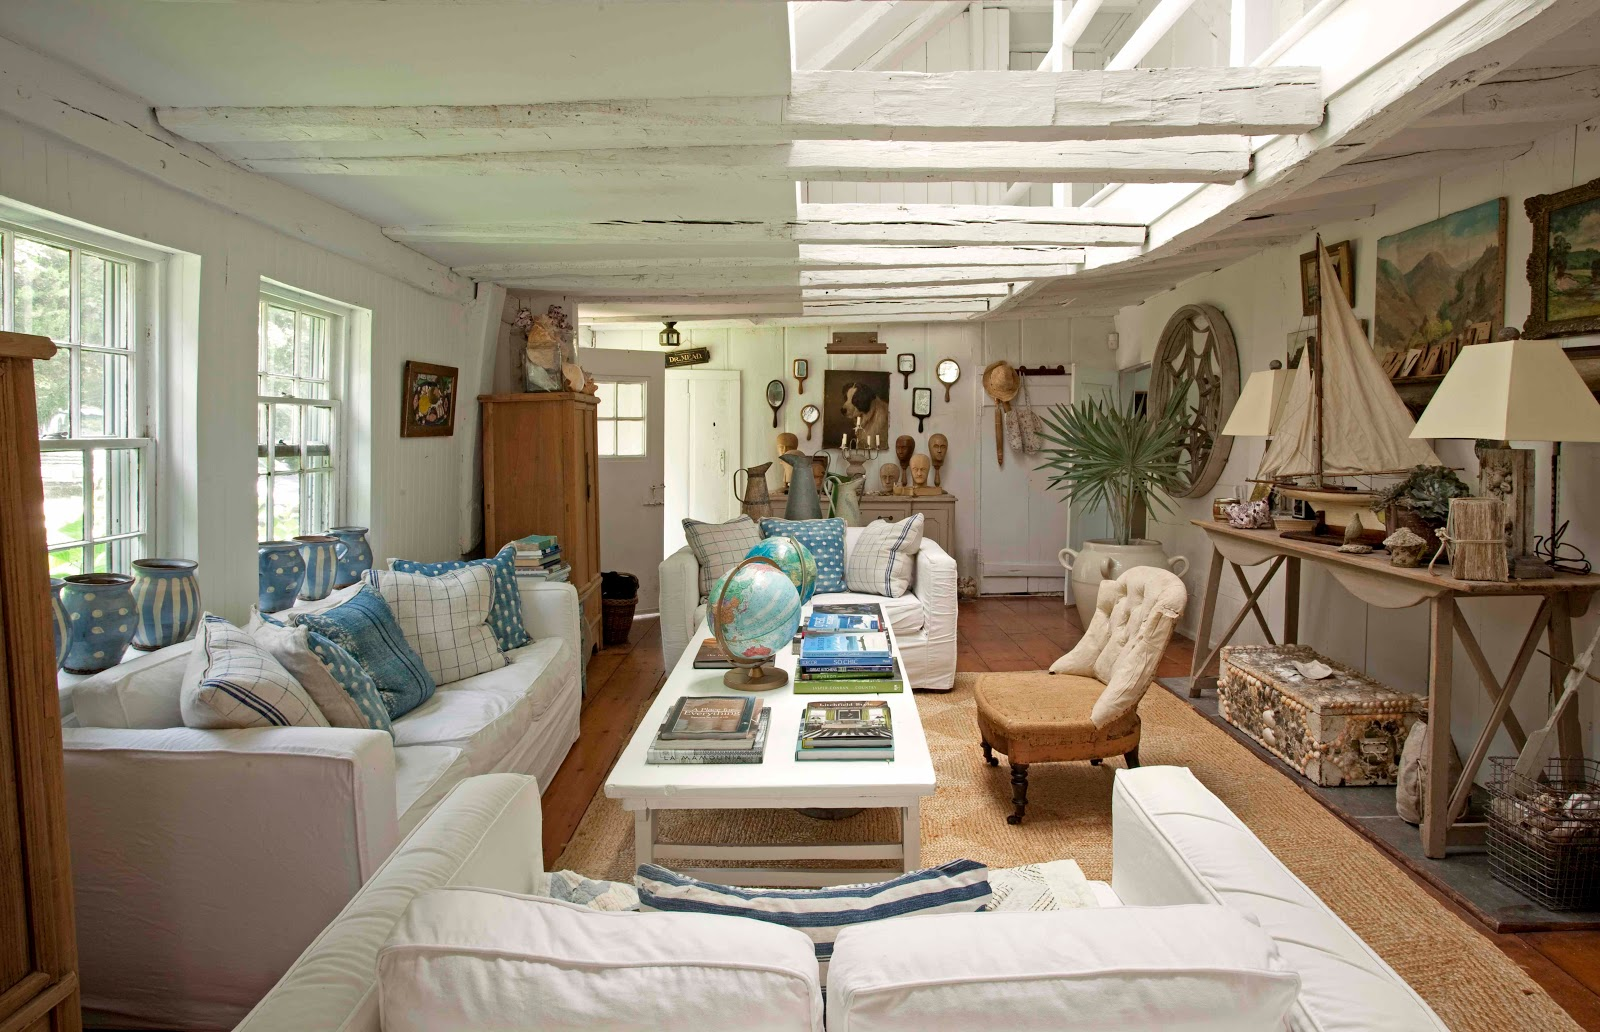 Information about home design seaside charm rooms that inspire by the sea - Beach design living rooms ...